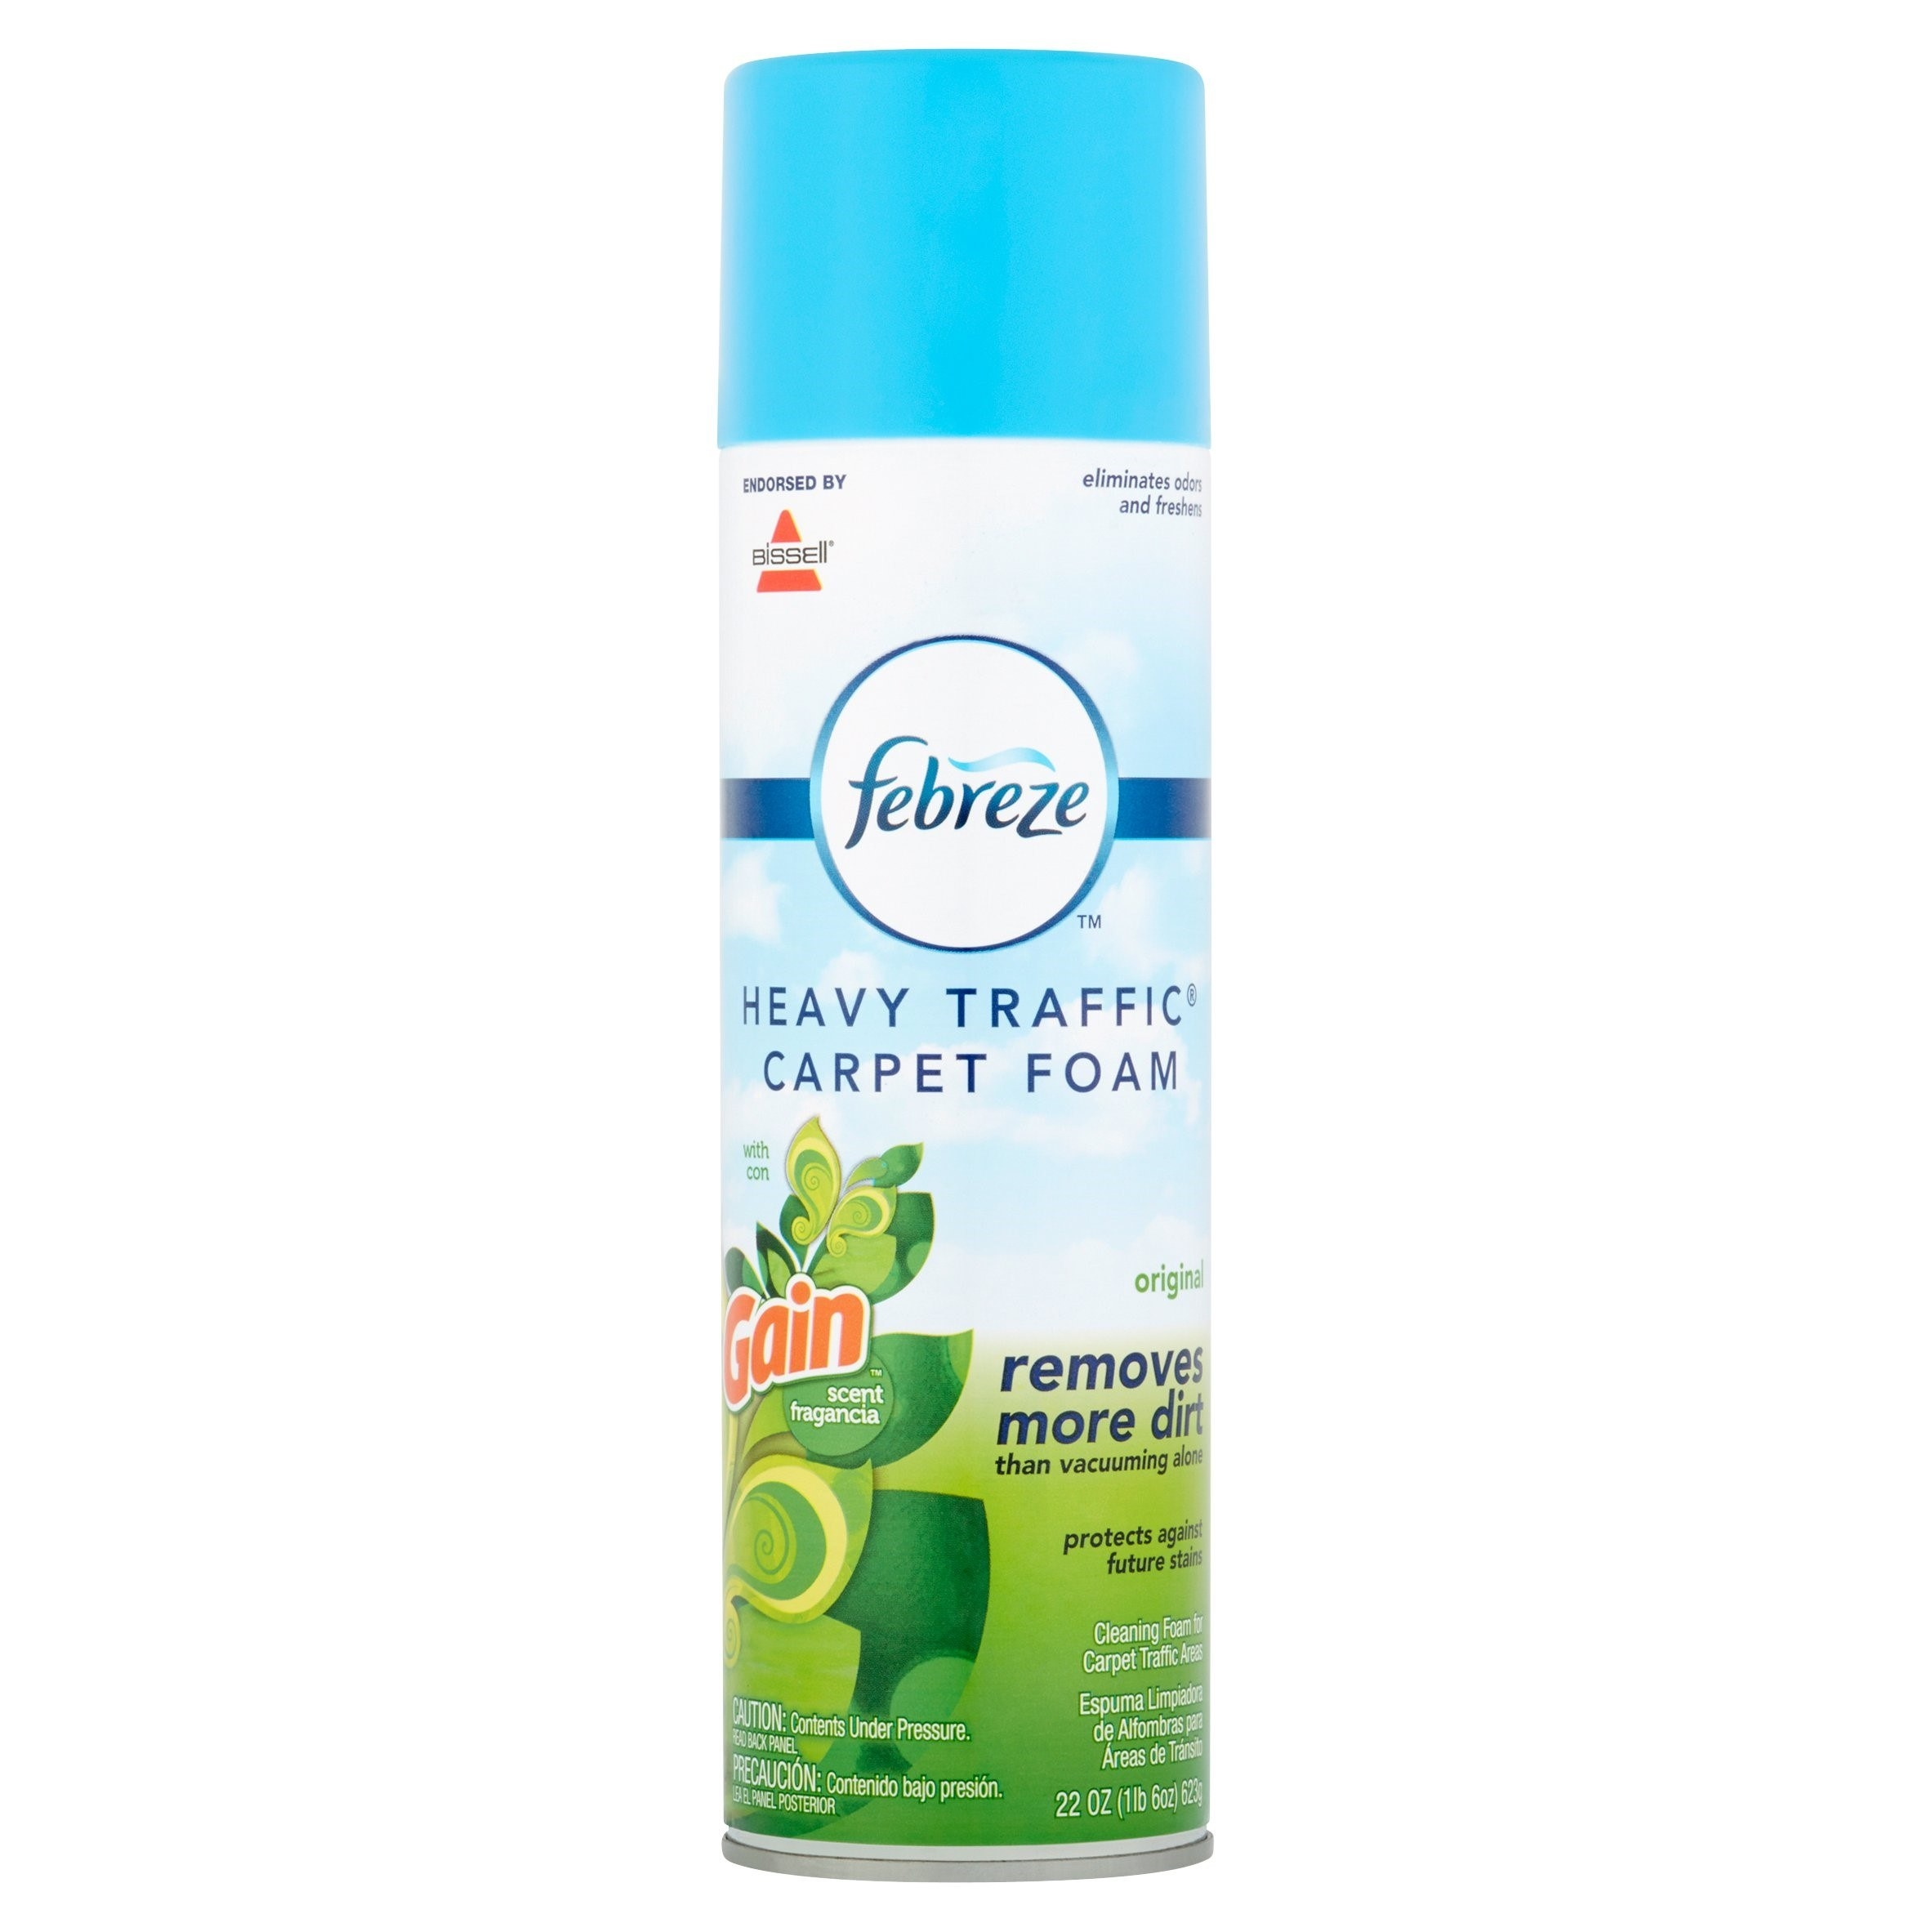 A 22-ounce can of Febreze heavy-traffic carpet foam made with Gain fragrance